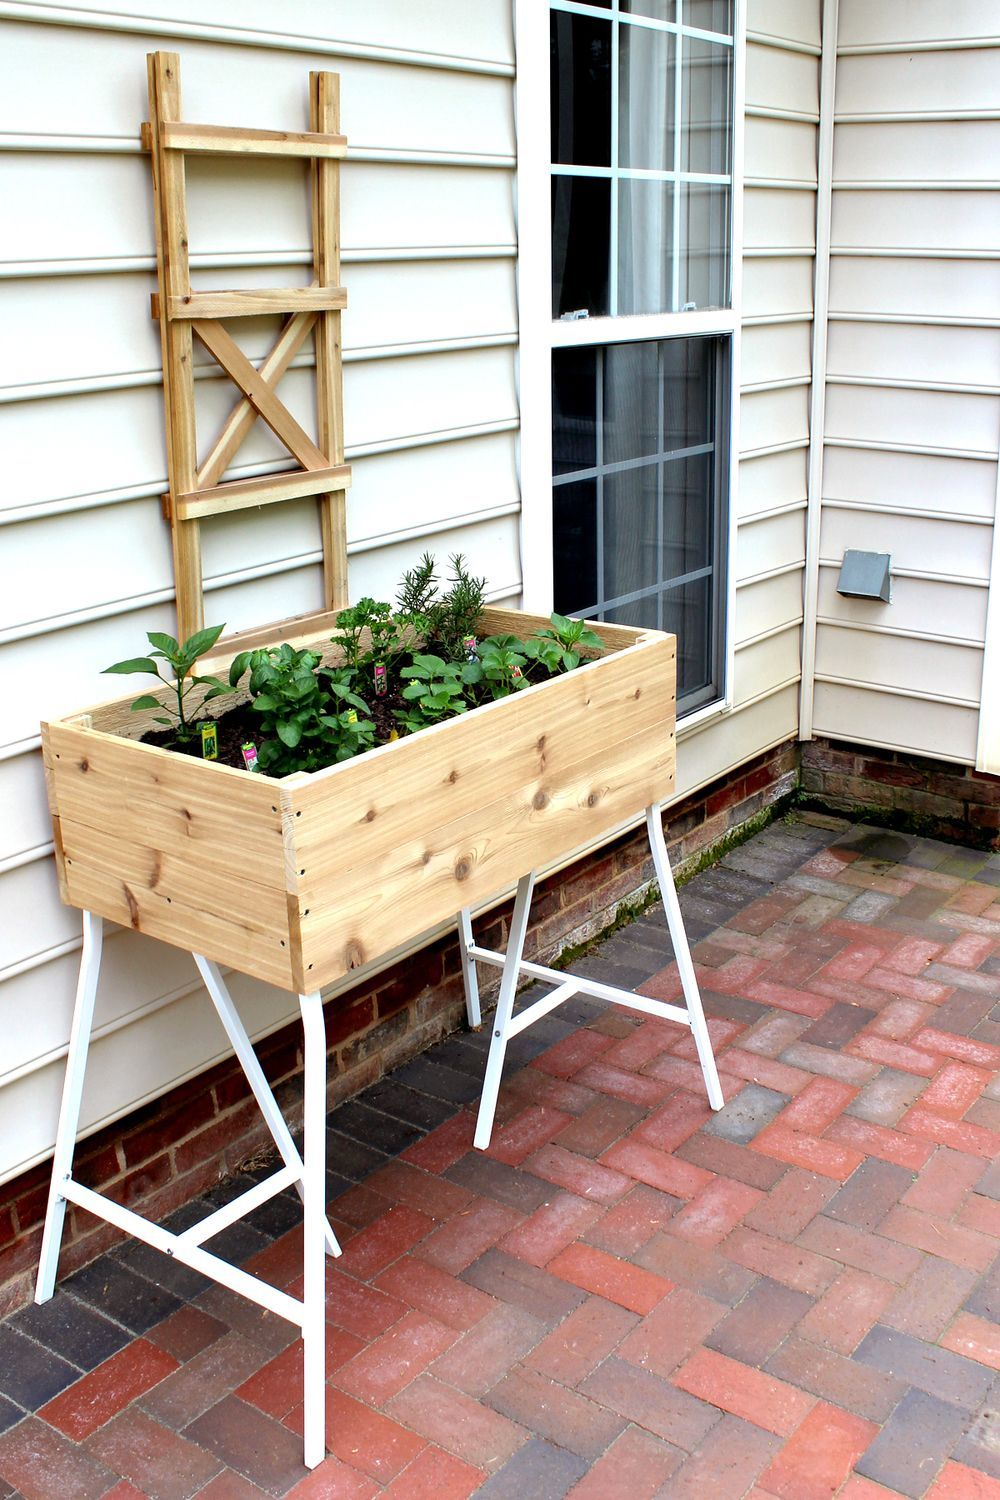 Elevated Garden Beds Make This How To Build An Elevated Garden Bed In 2020 Elevated Garden Beds Elevated Gardening Garden Beds